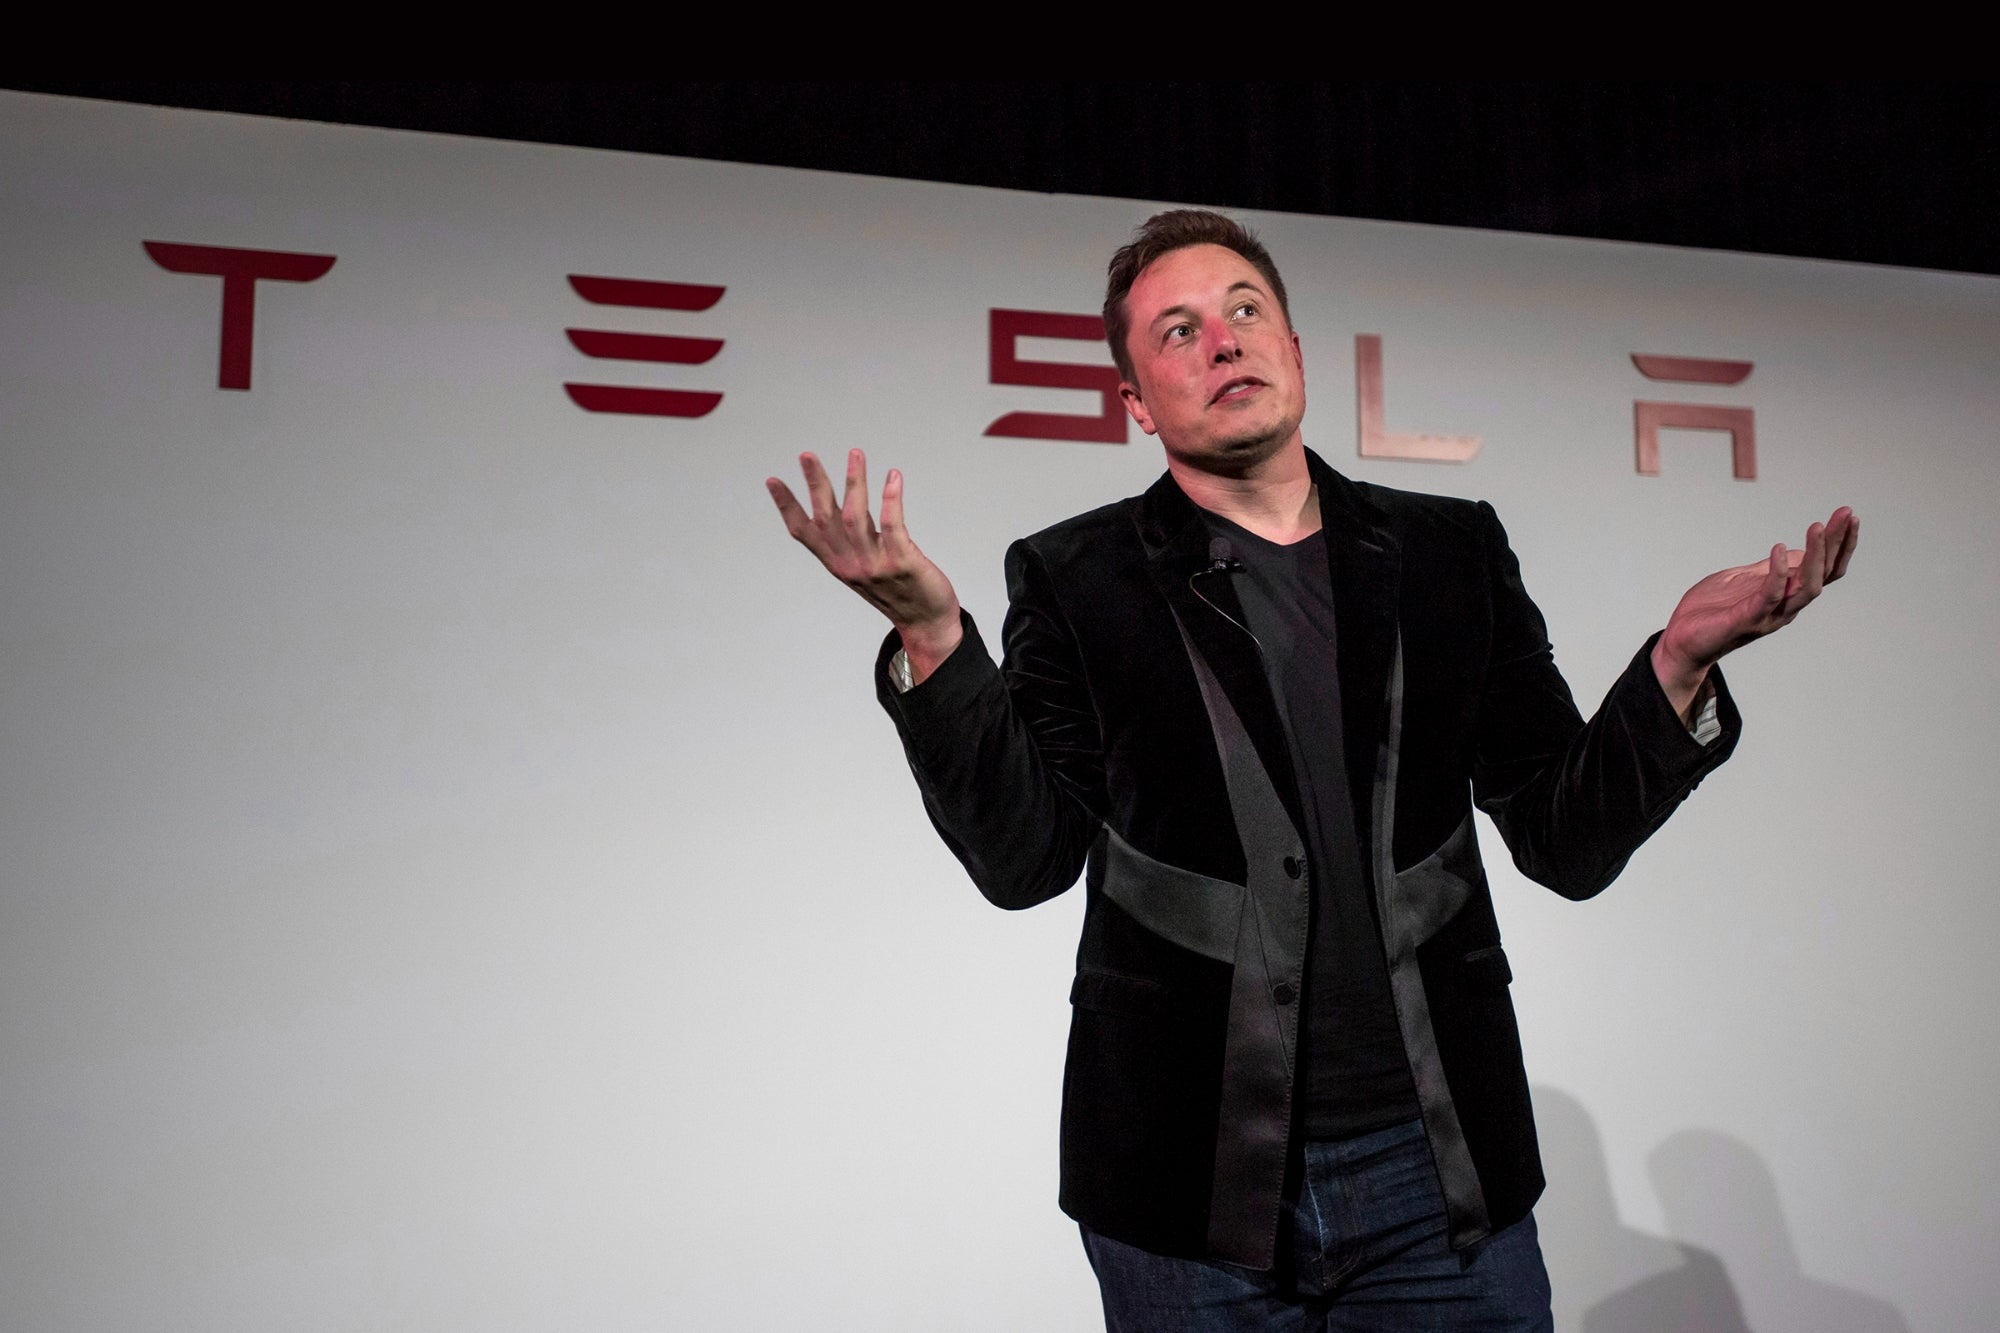 Tesla's Higher Prices Due to Supply Chain Pressure, Says CEO Elon Musk